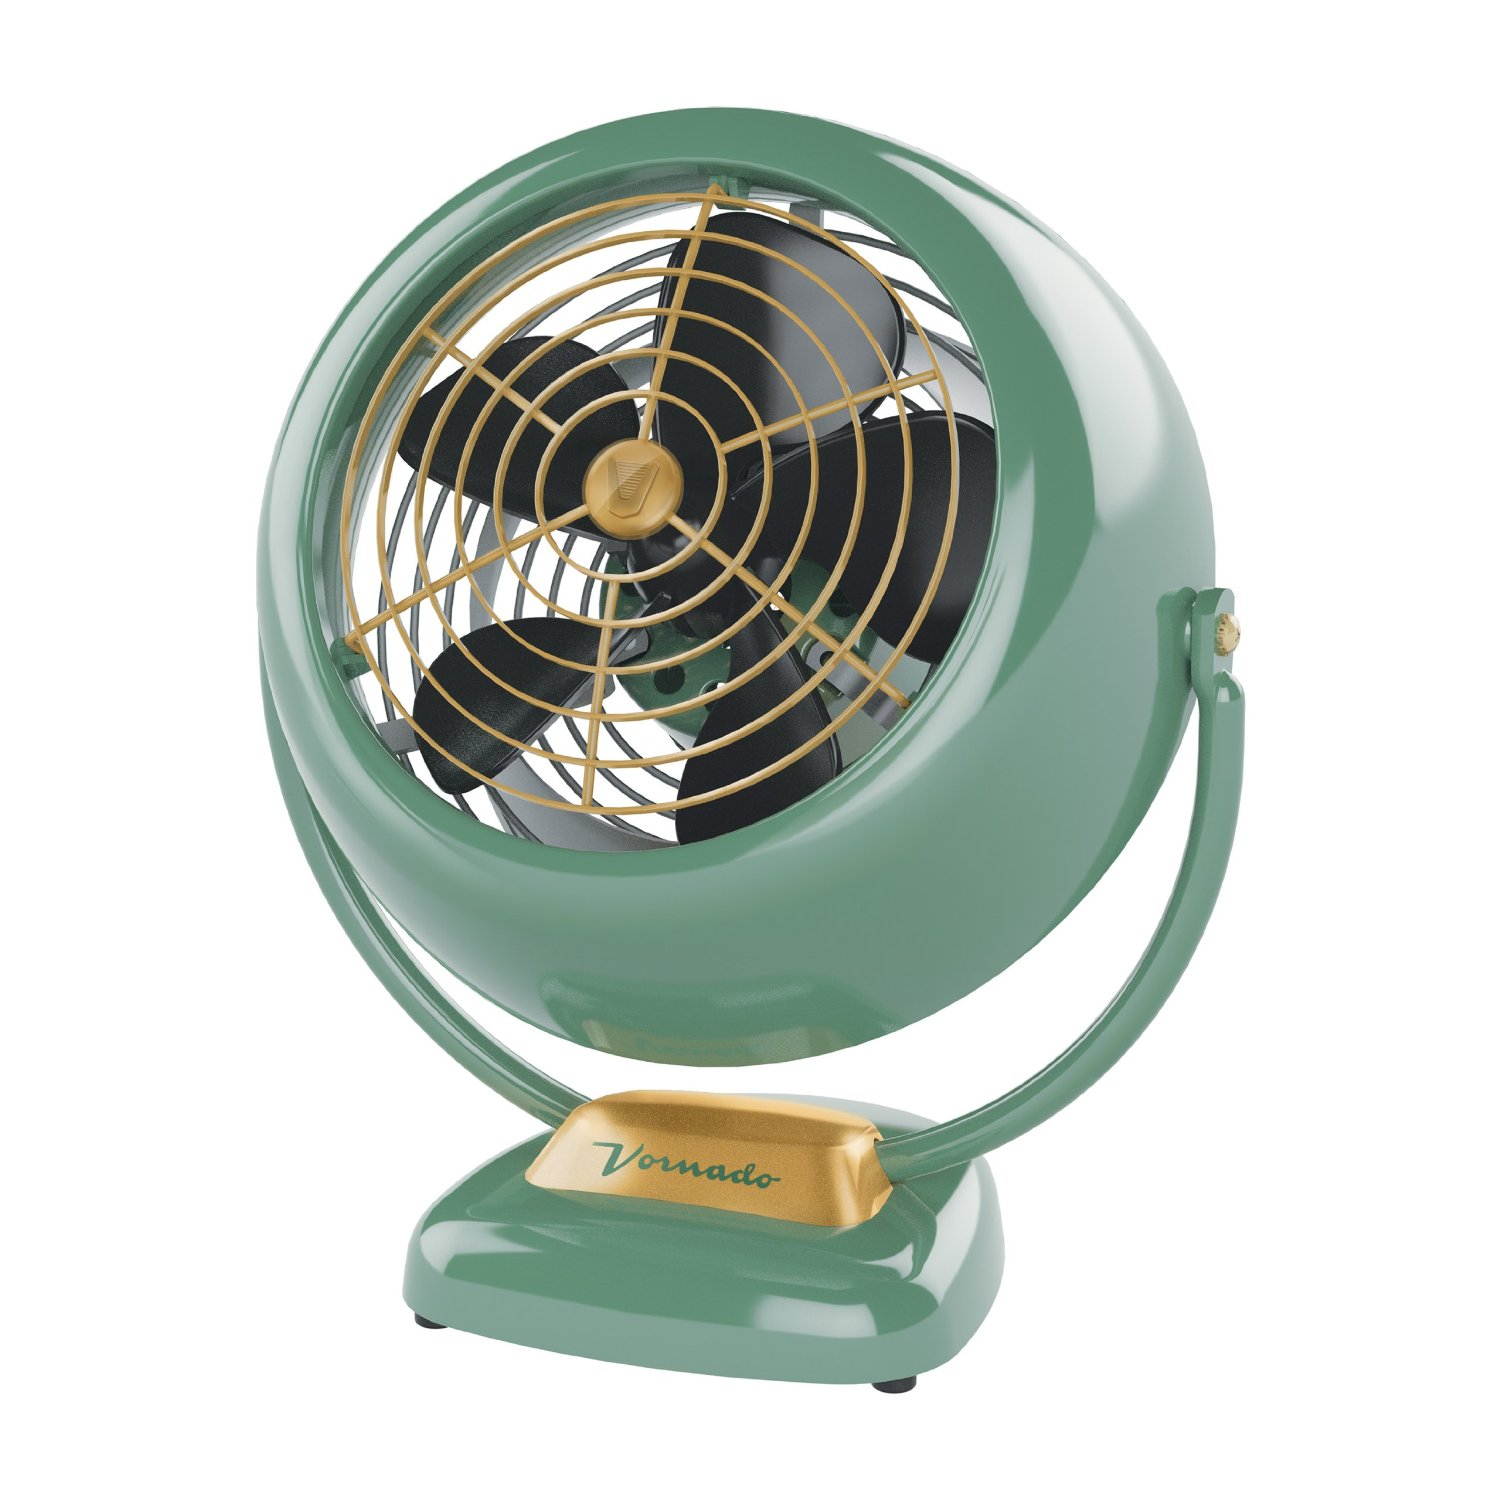 Vintage Looking Fan Retro Fan